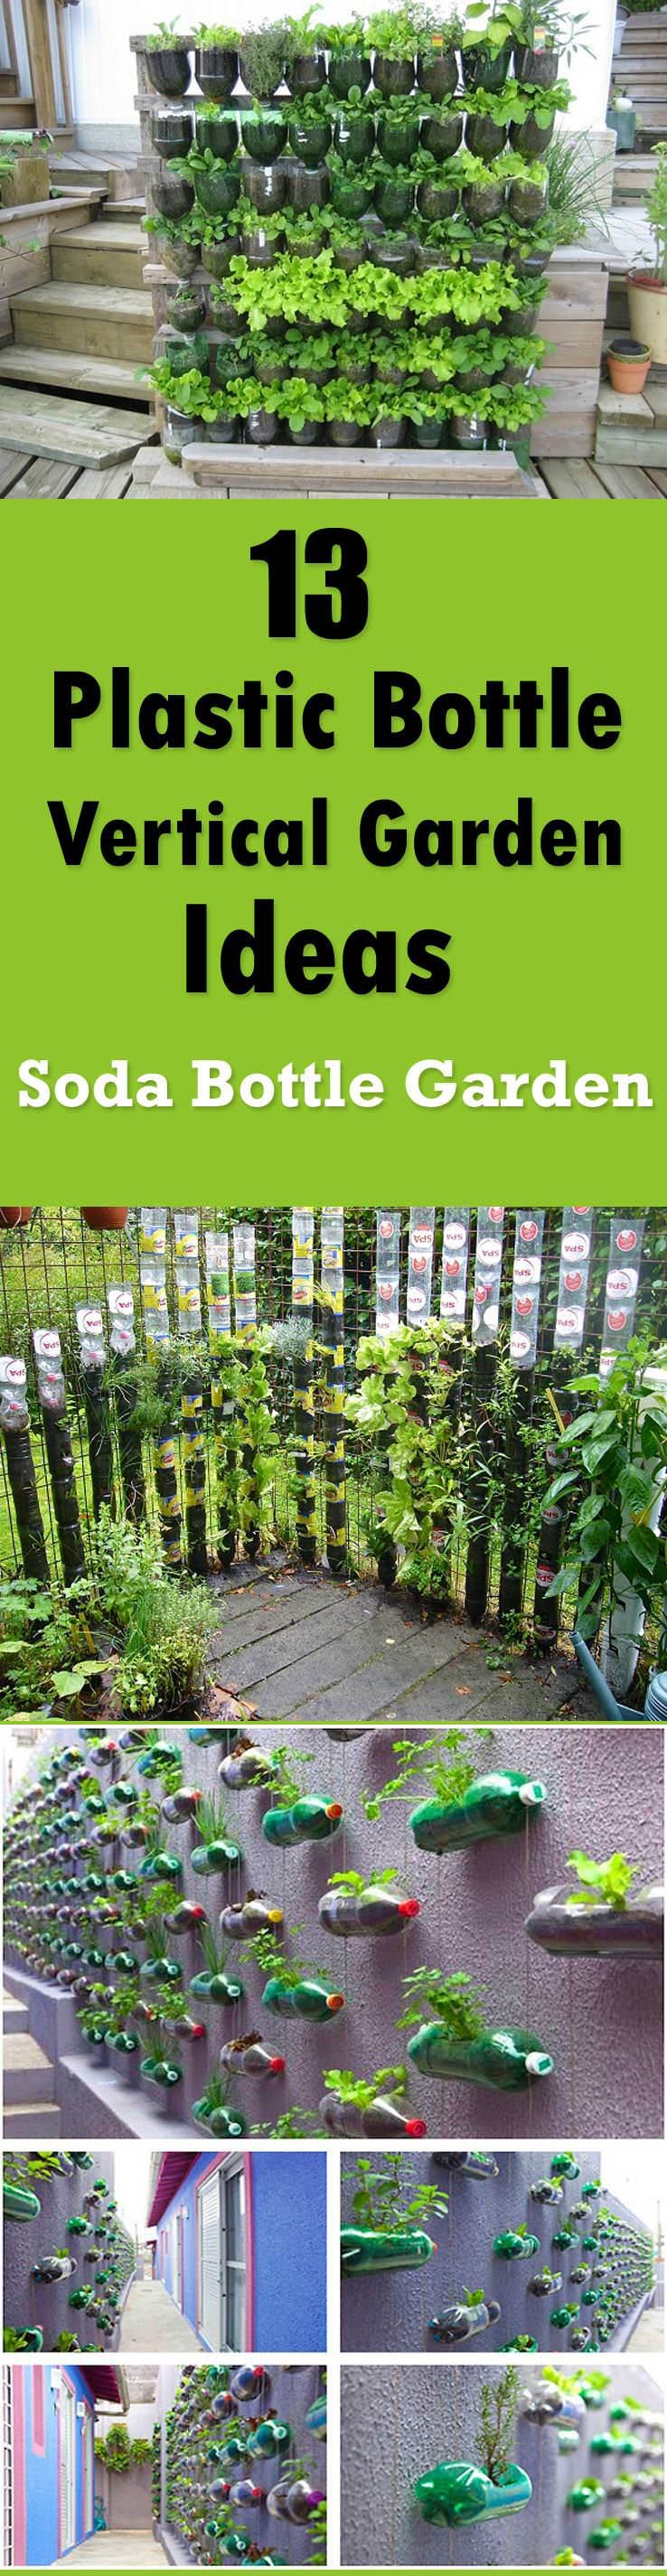 Vertical Gardening Ideas 26 creative ways to plant a vertical garden how to make a vertical garden 13 Plastic Bottle Vertical Garden Ideas